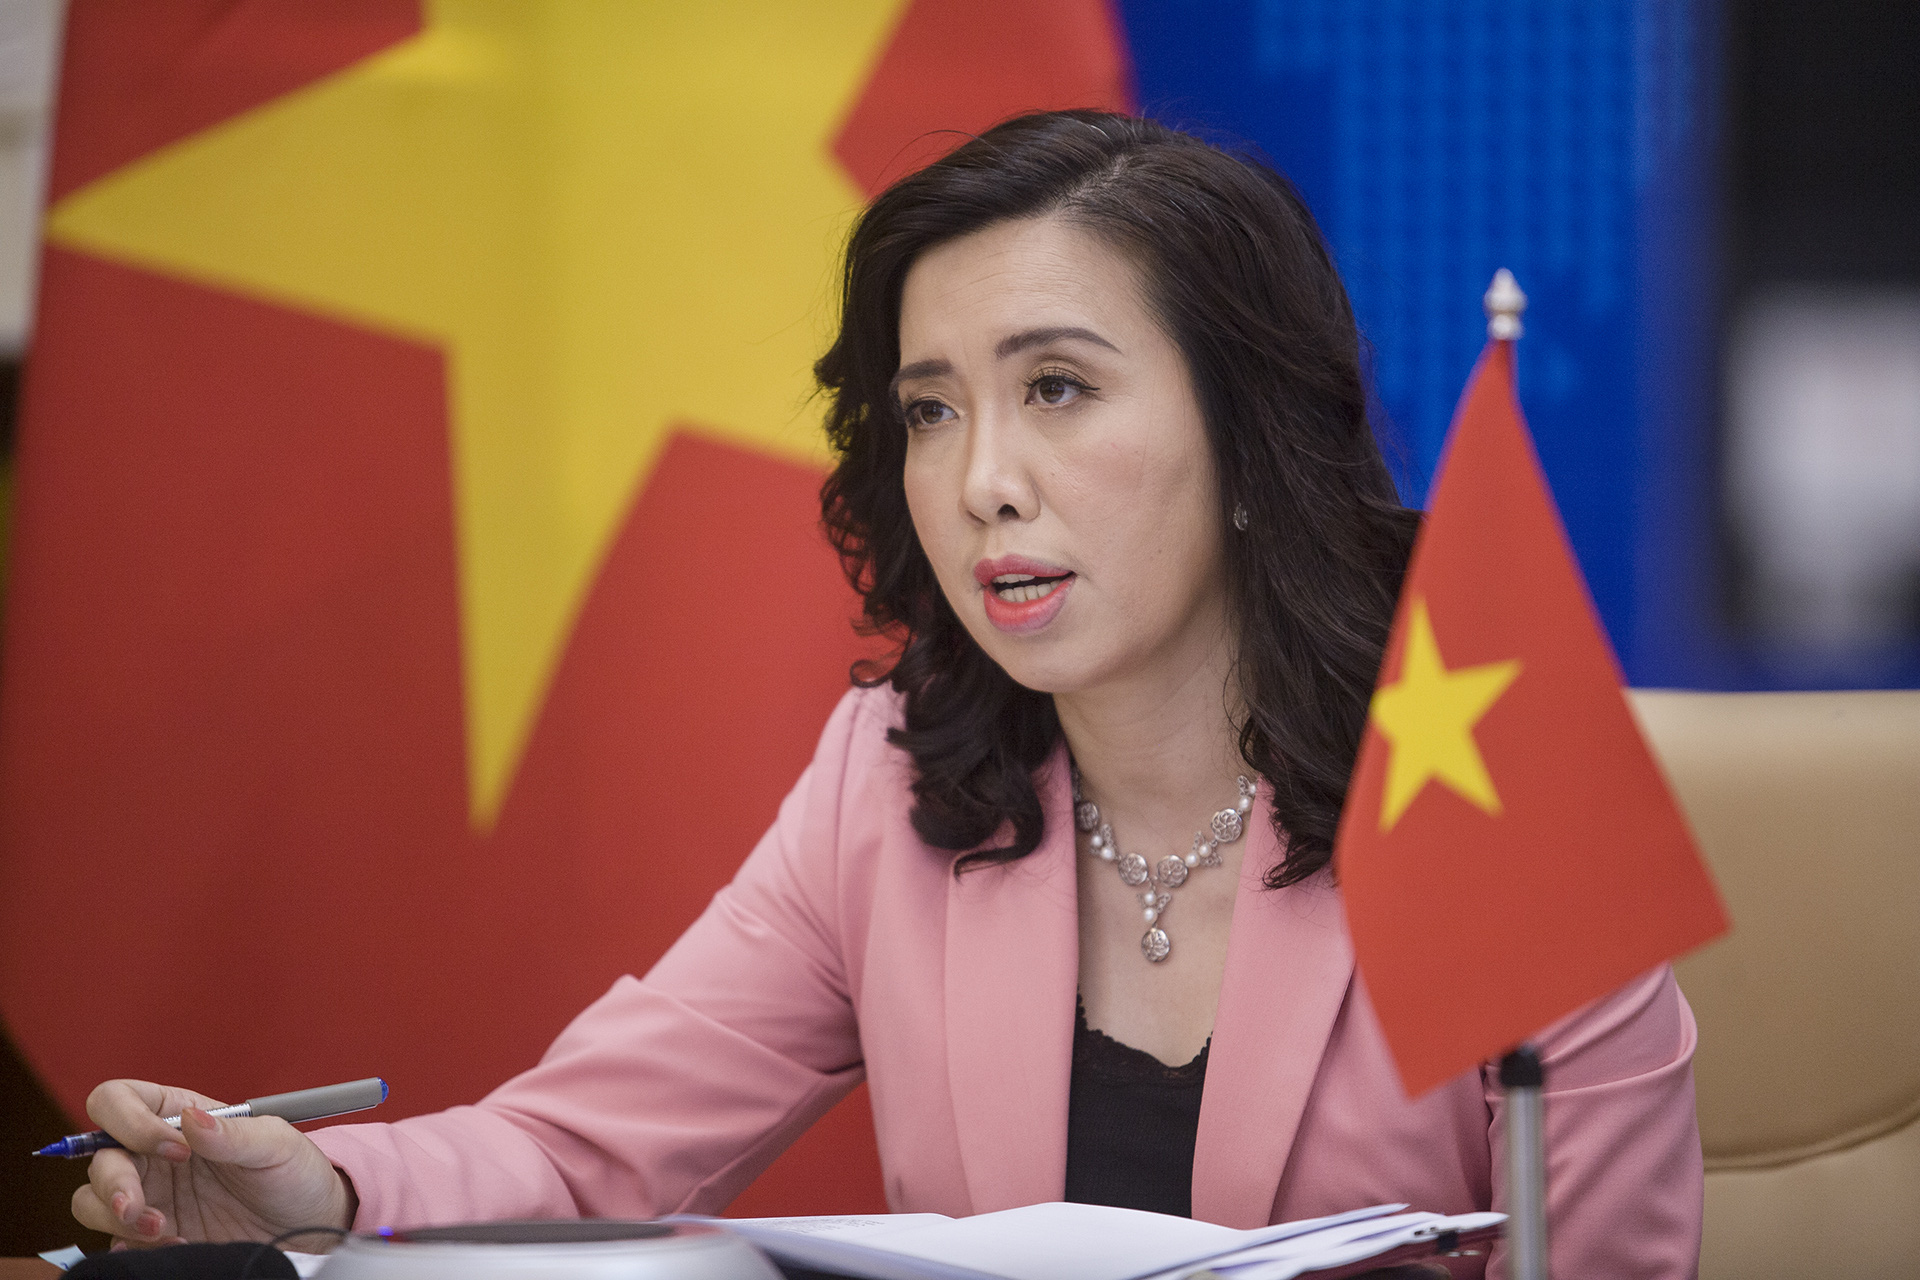 Foreign citizens in Vietnam to be vaccinated against COVID-19: foreign ministry spokesperson